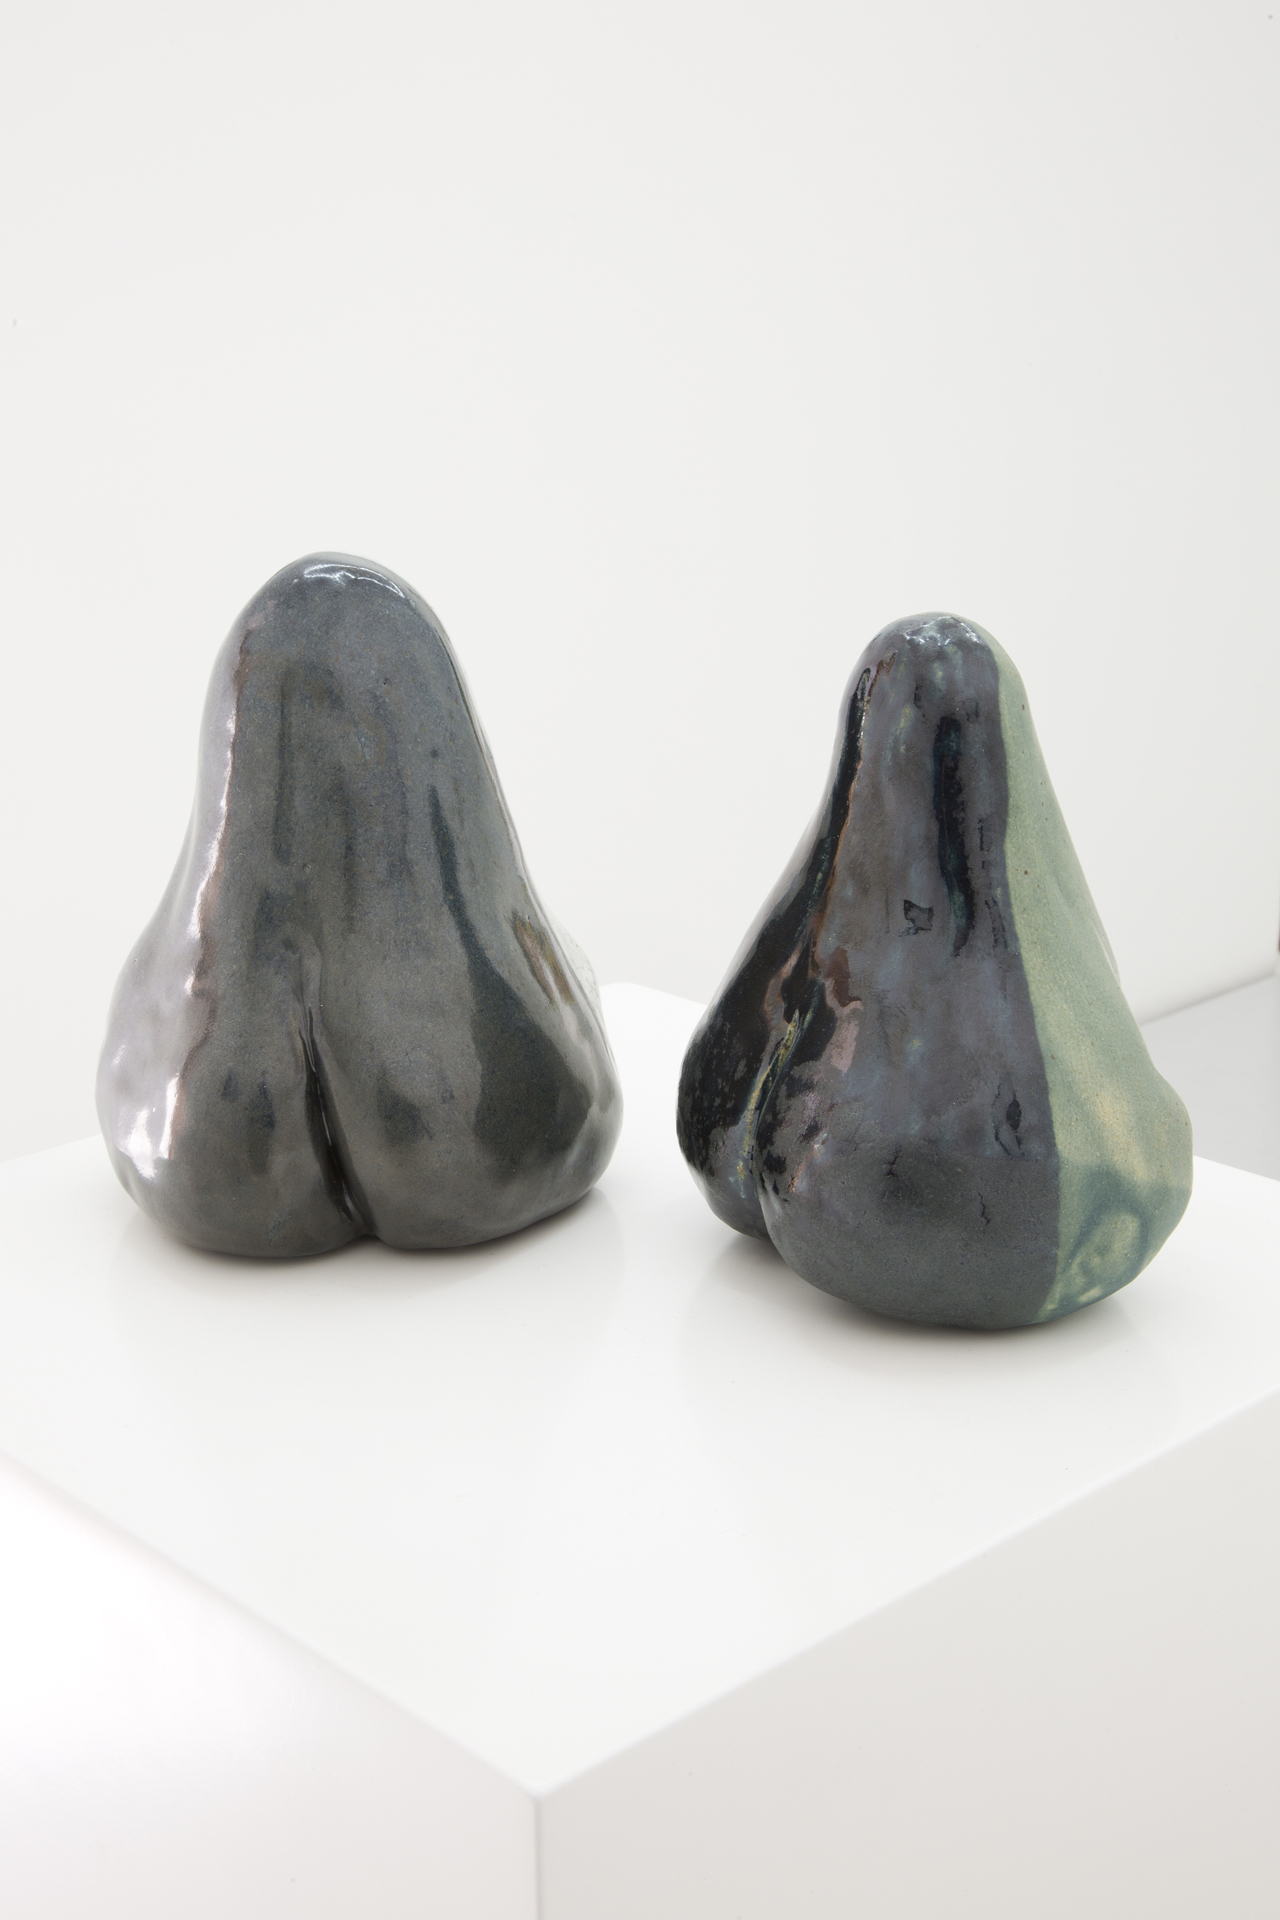 Allison Katz, Arsi–Versi (Nose–Ass–Pear), (2014 – ongoing), 2016. Glazed ceramic, 14 x 14 x 16 cm; 5.5 x 5.5 x 6 in.